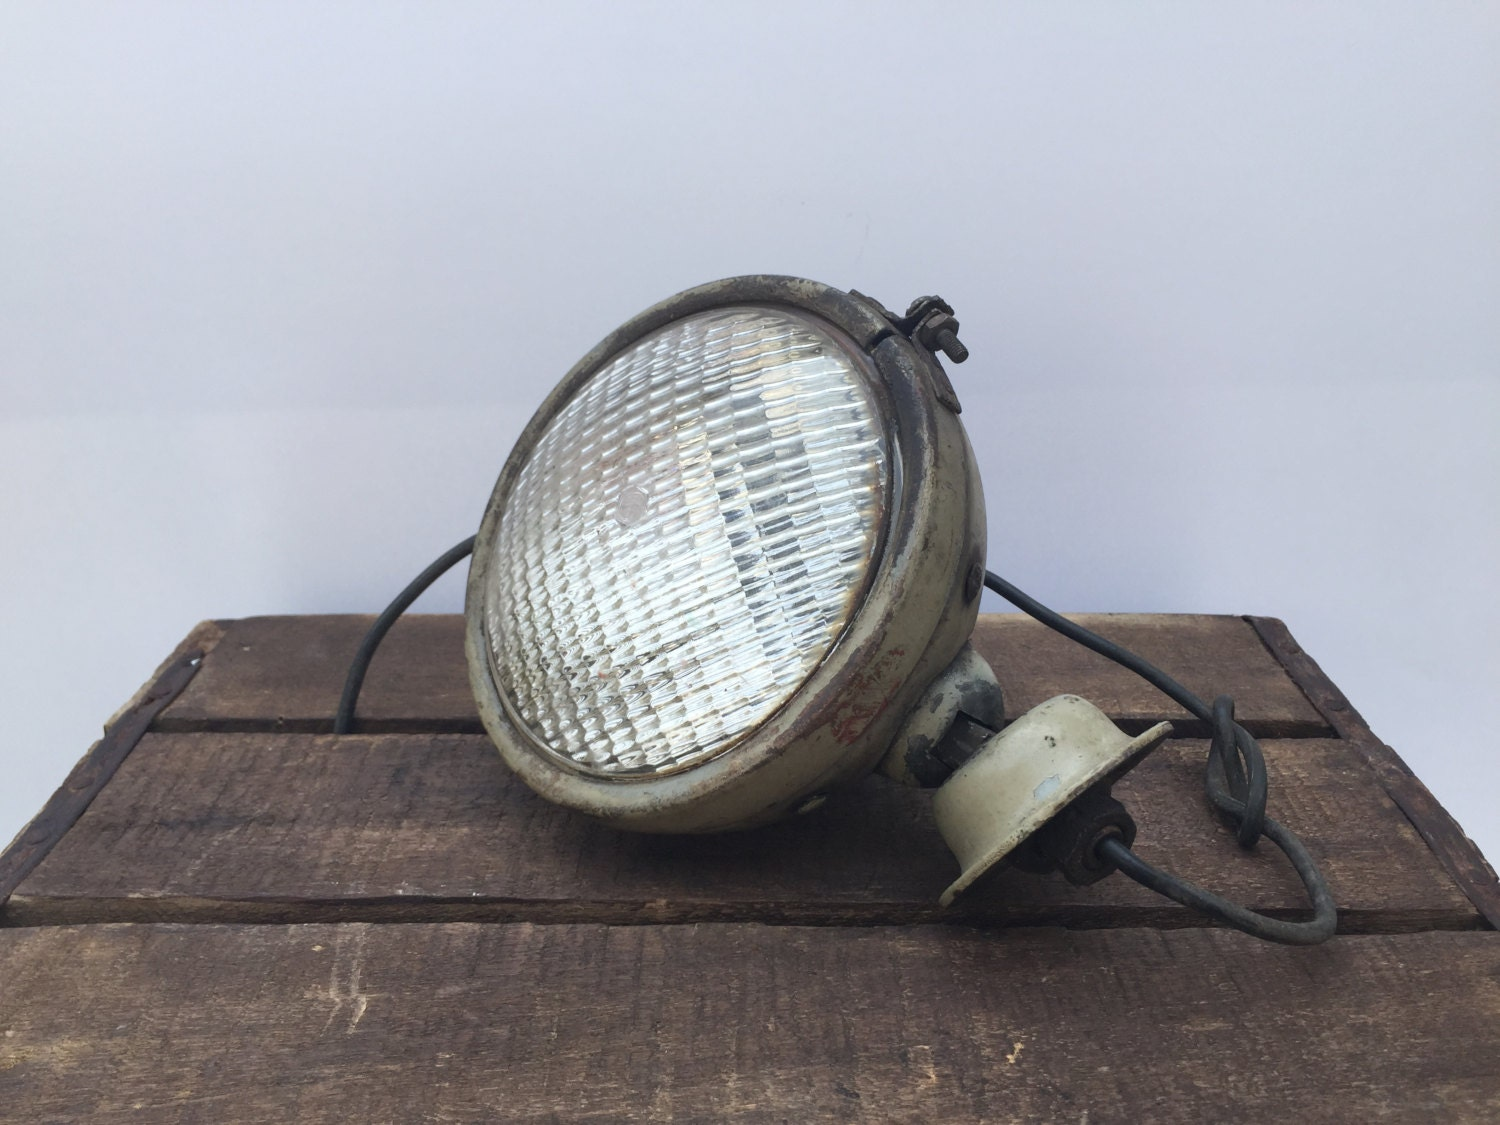 Vintage Tractor Lights : Vintage tract o lite headlight ford tractor light rat by